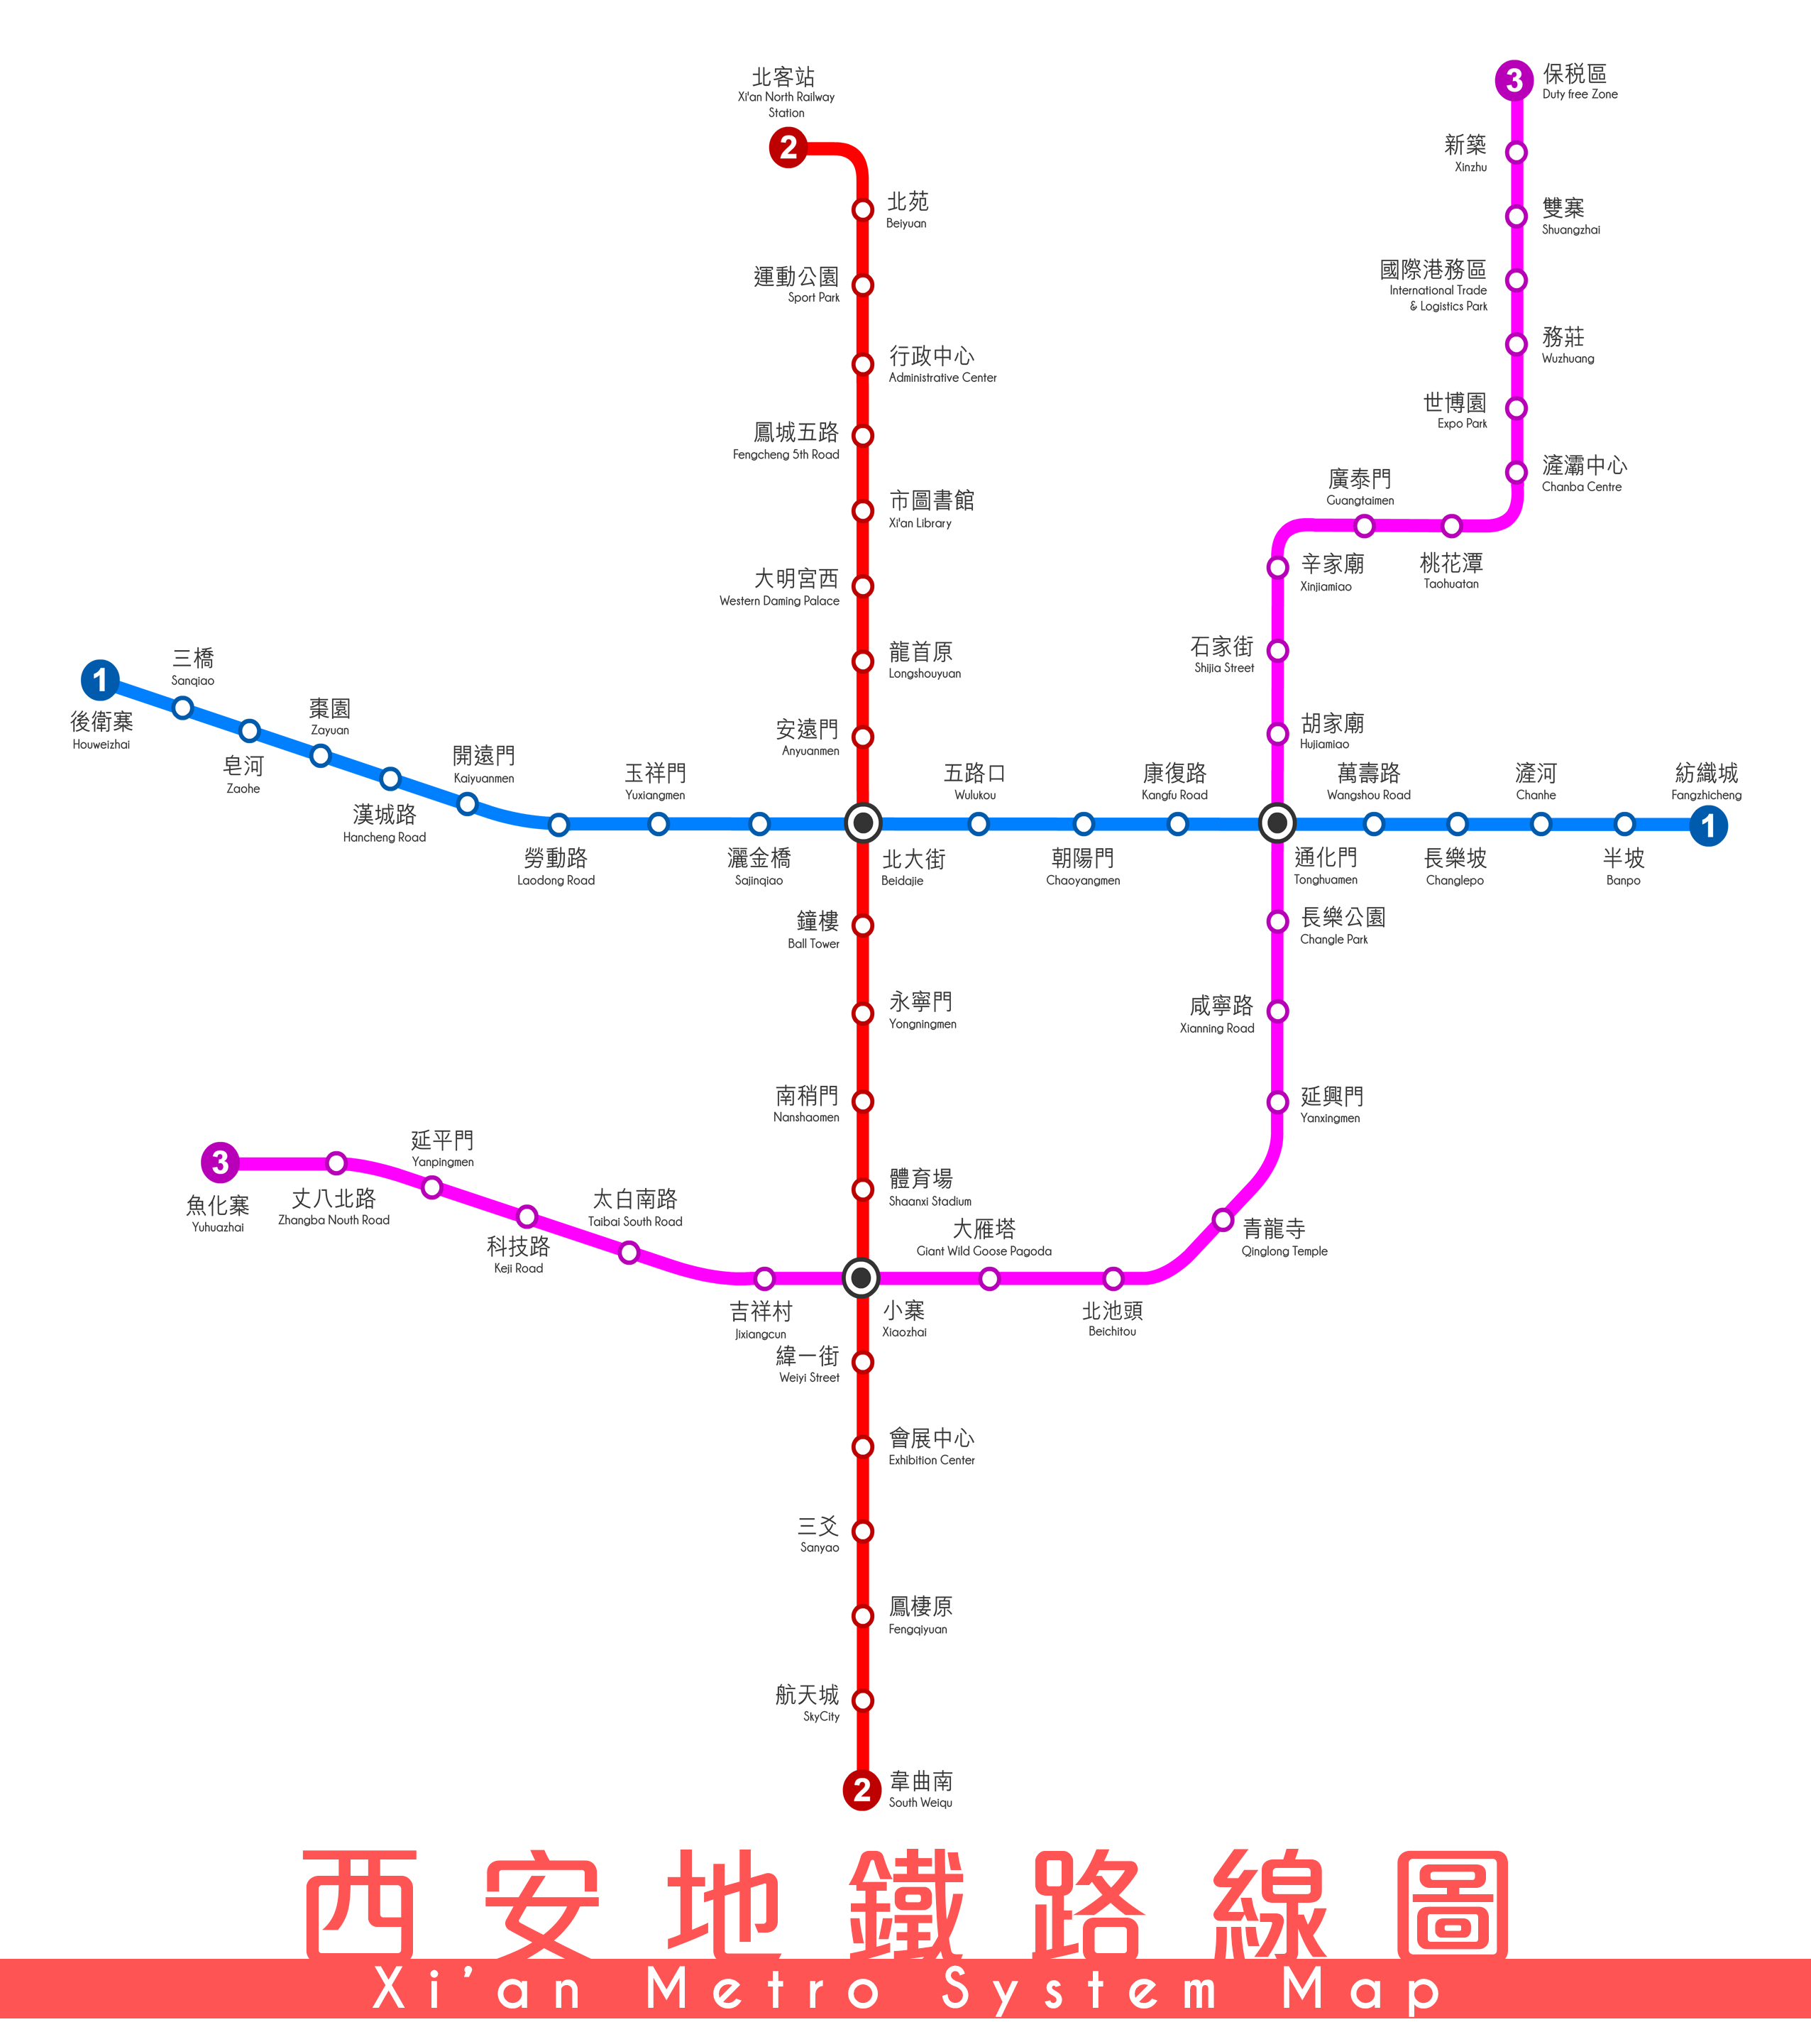 Xi'an Metro Xi'an subway